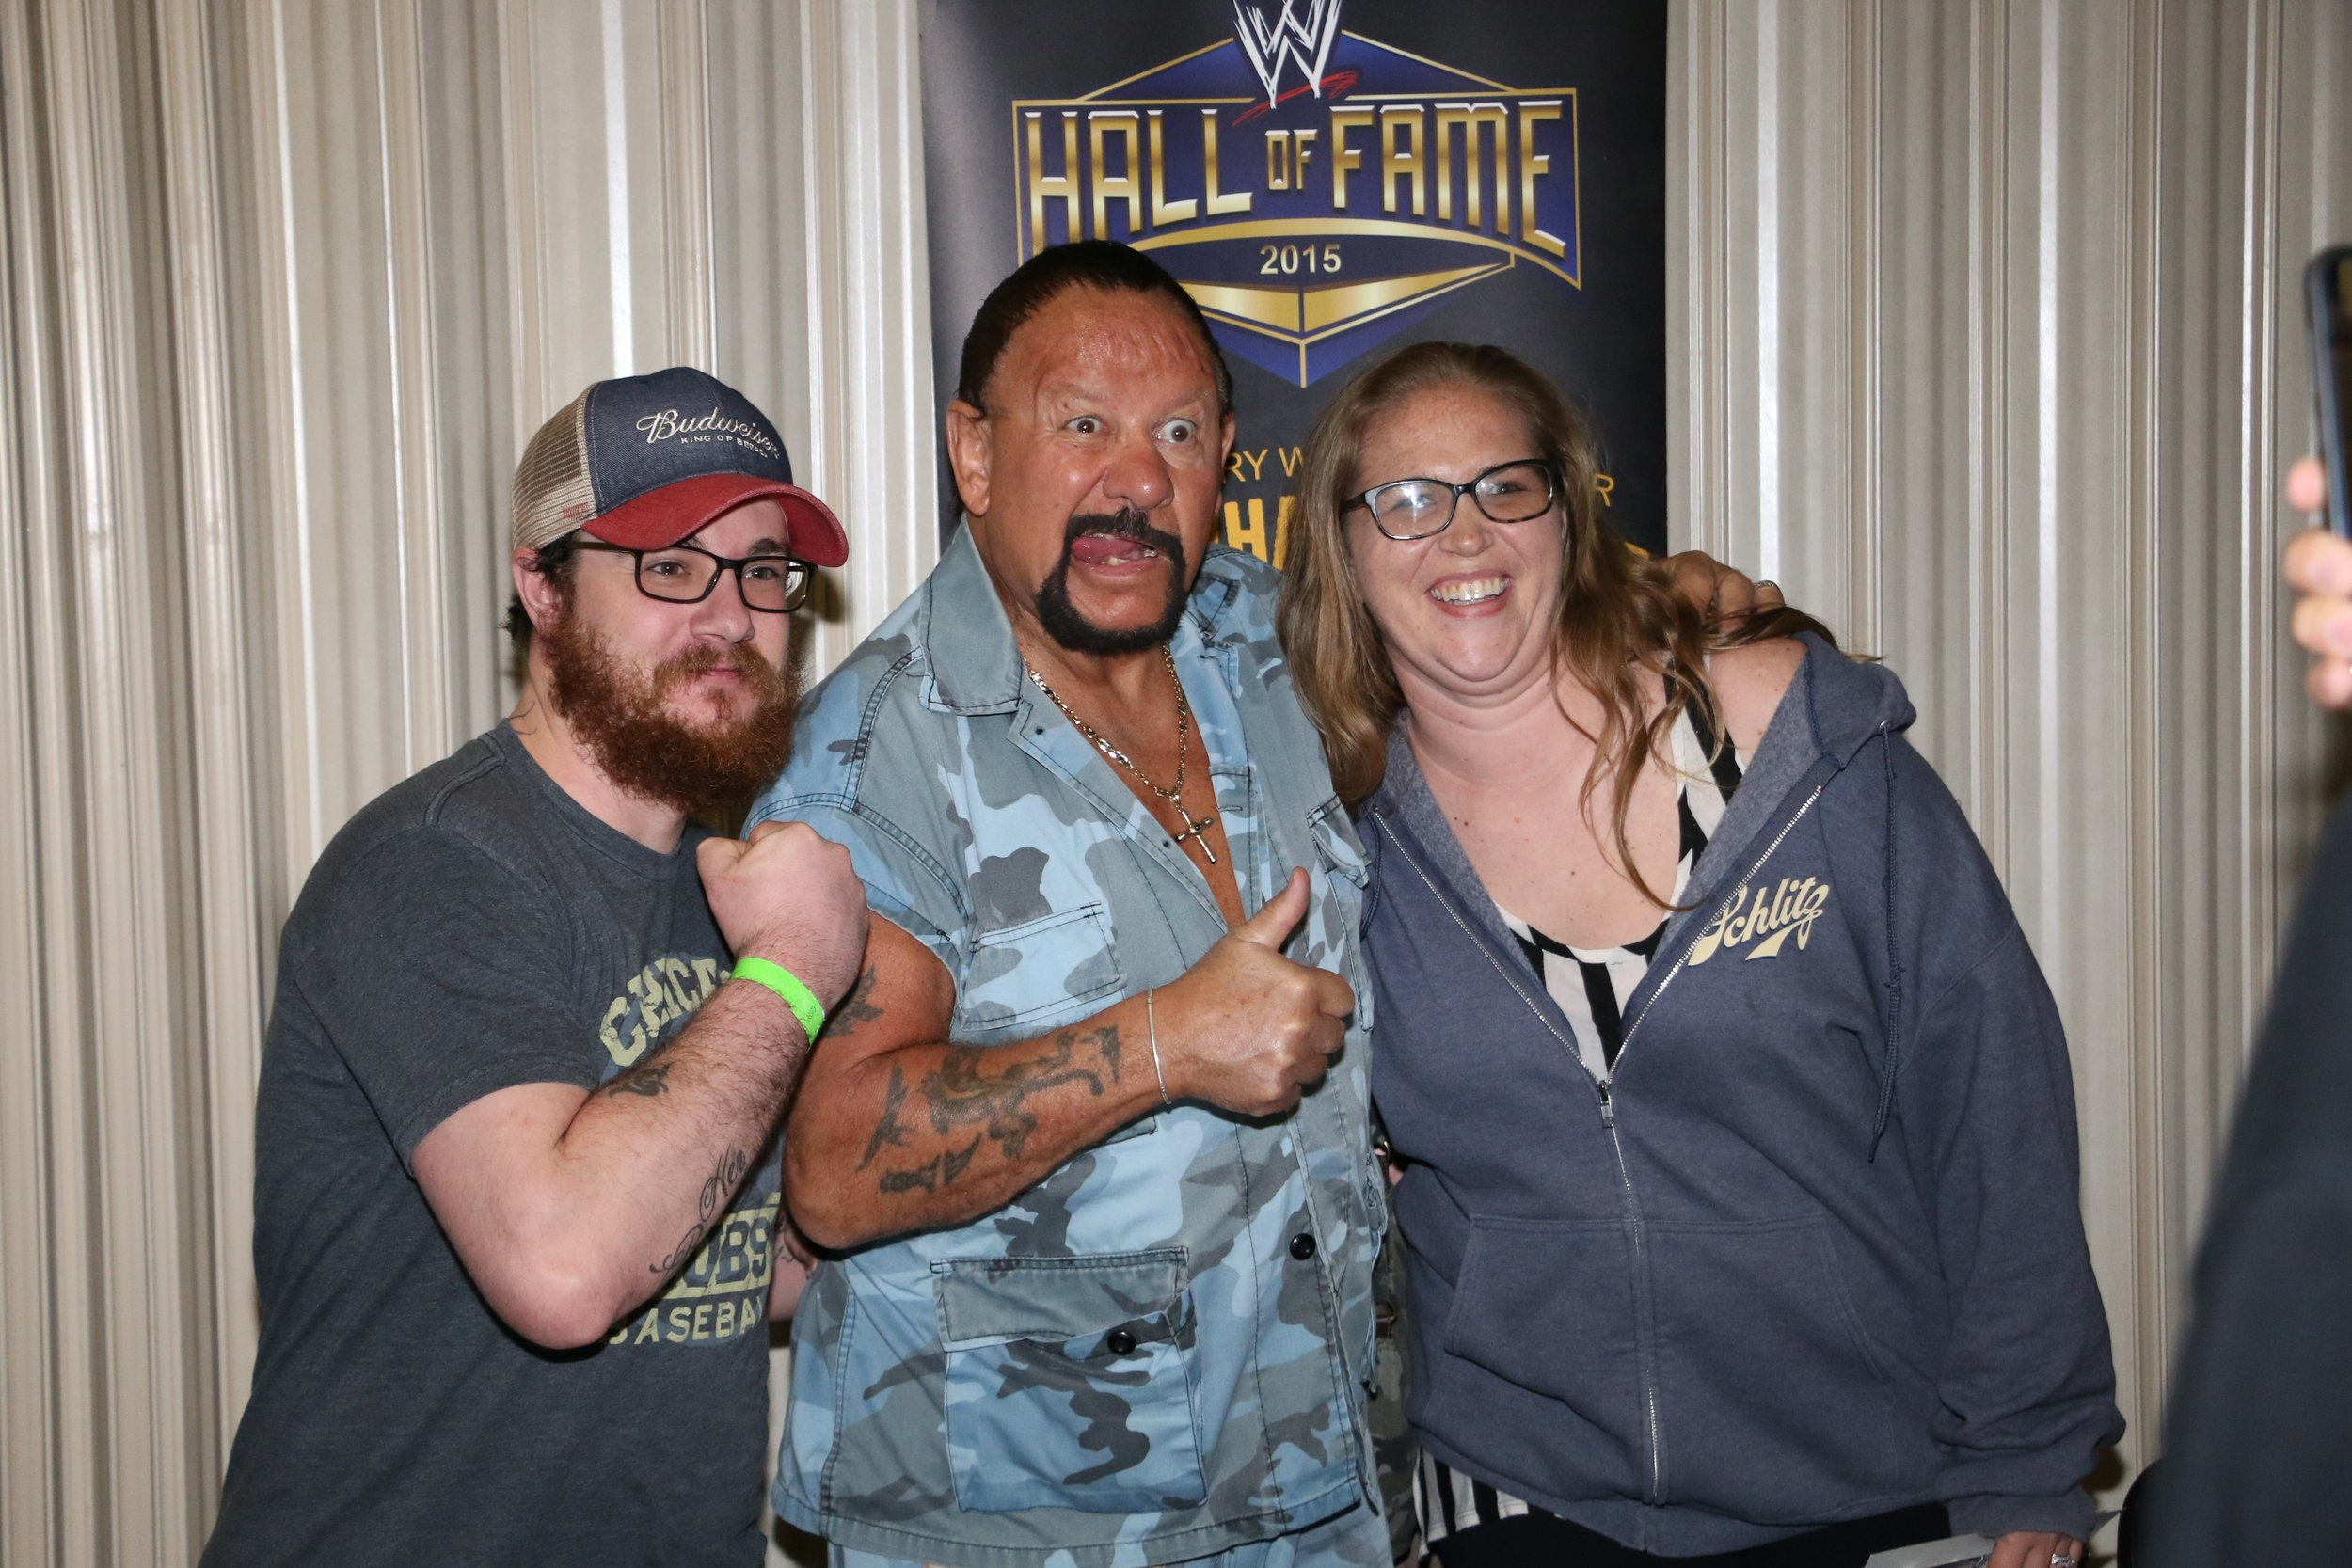 WWE Hall of Famer Bushwhacker Luke poses with fans during the VIP Meet and Greet before the show.